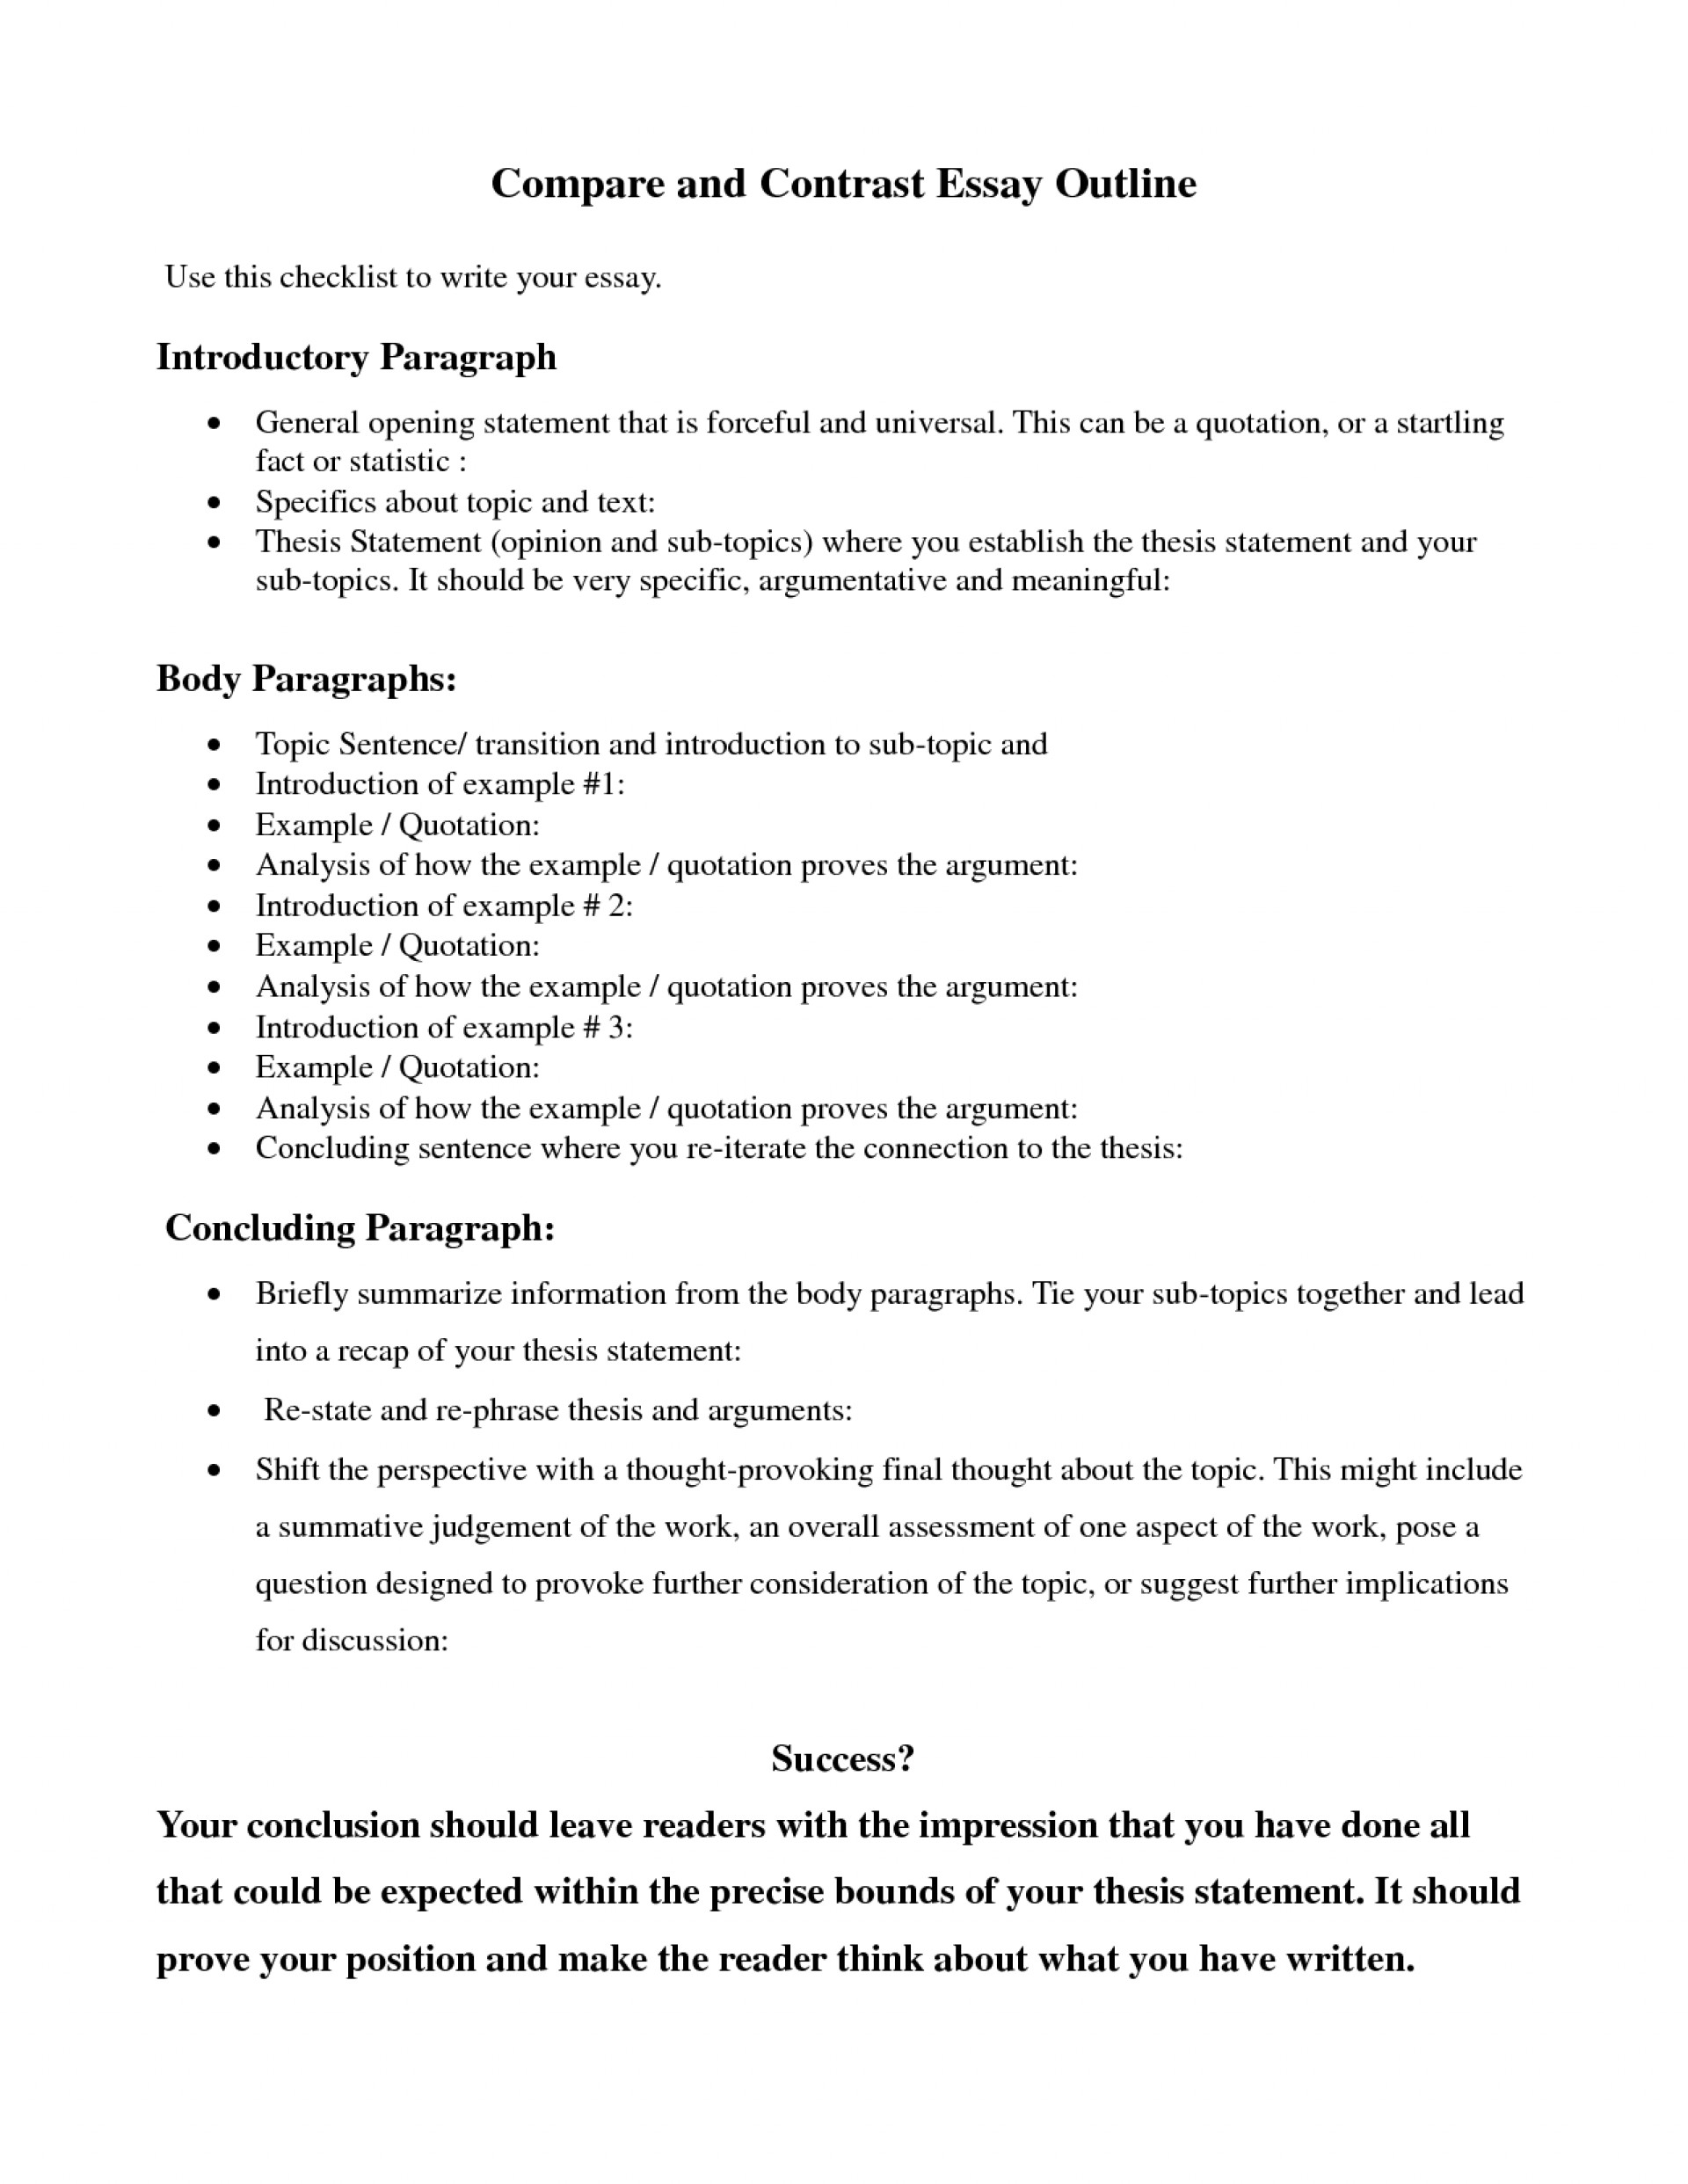 001 Compare And Contrast Essay Example Frightening Topics Outline Doc Sample 4th Grade 1920